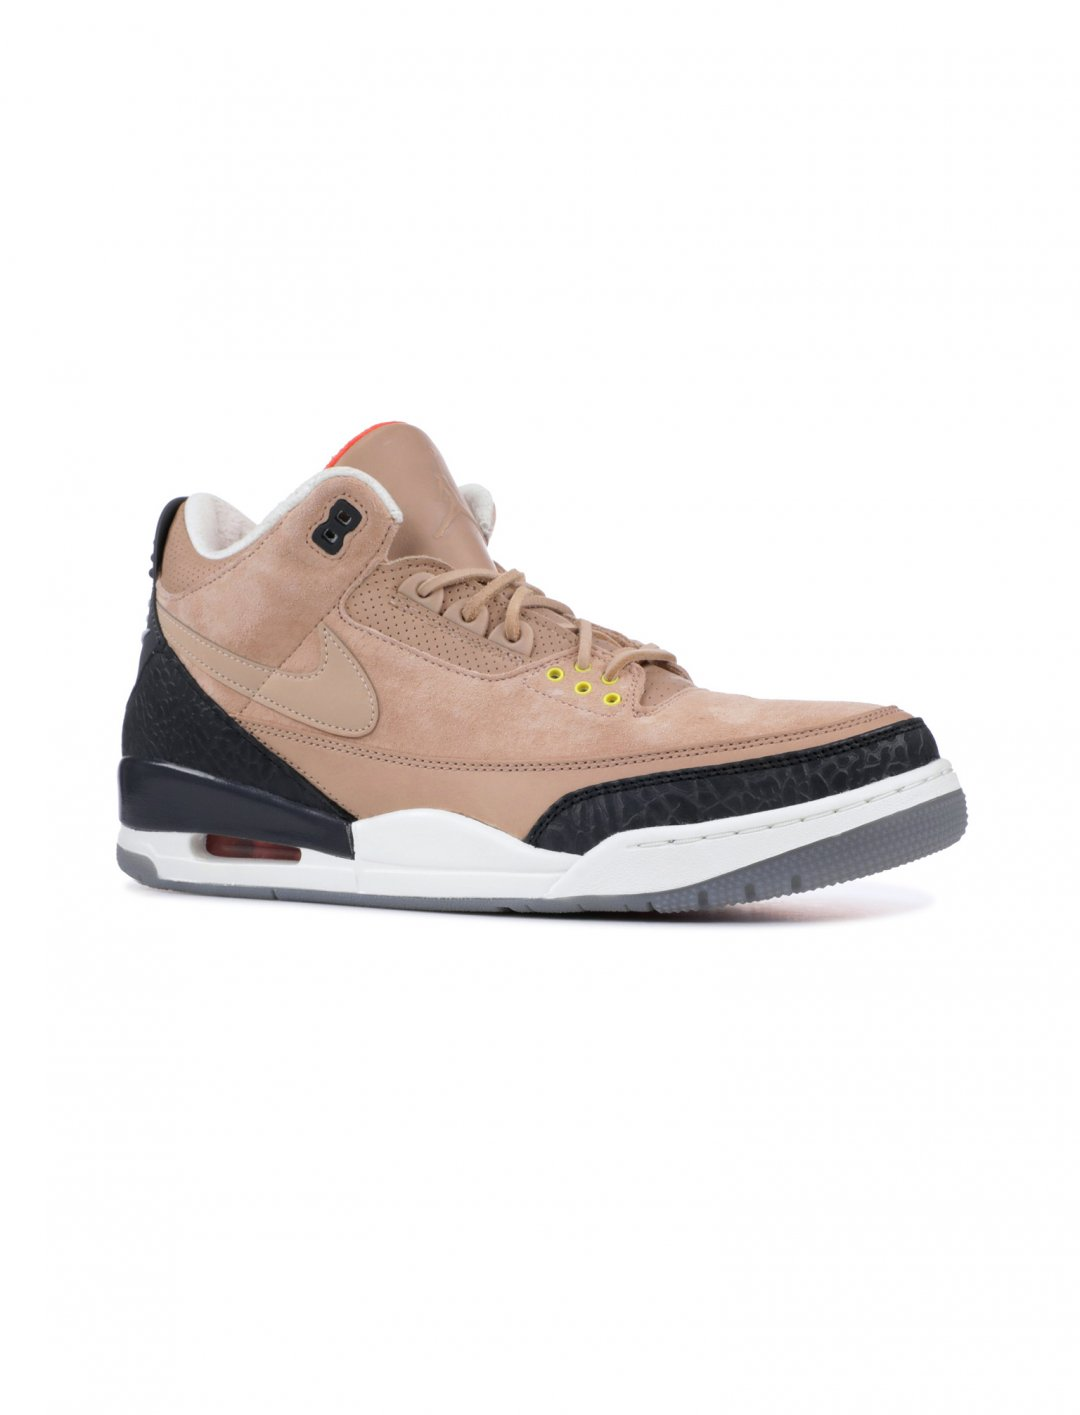 "Air Jordan 3 'Bio Beige' {""id"":12,""product_section_id"":1,""name"":""Shoes"",""order"":12} Jordan"